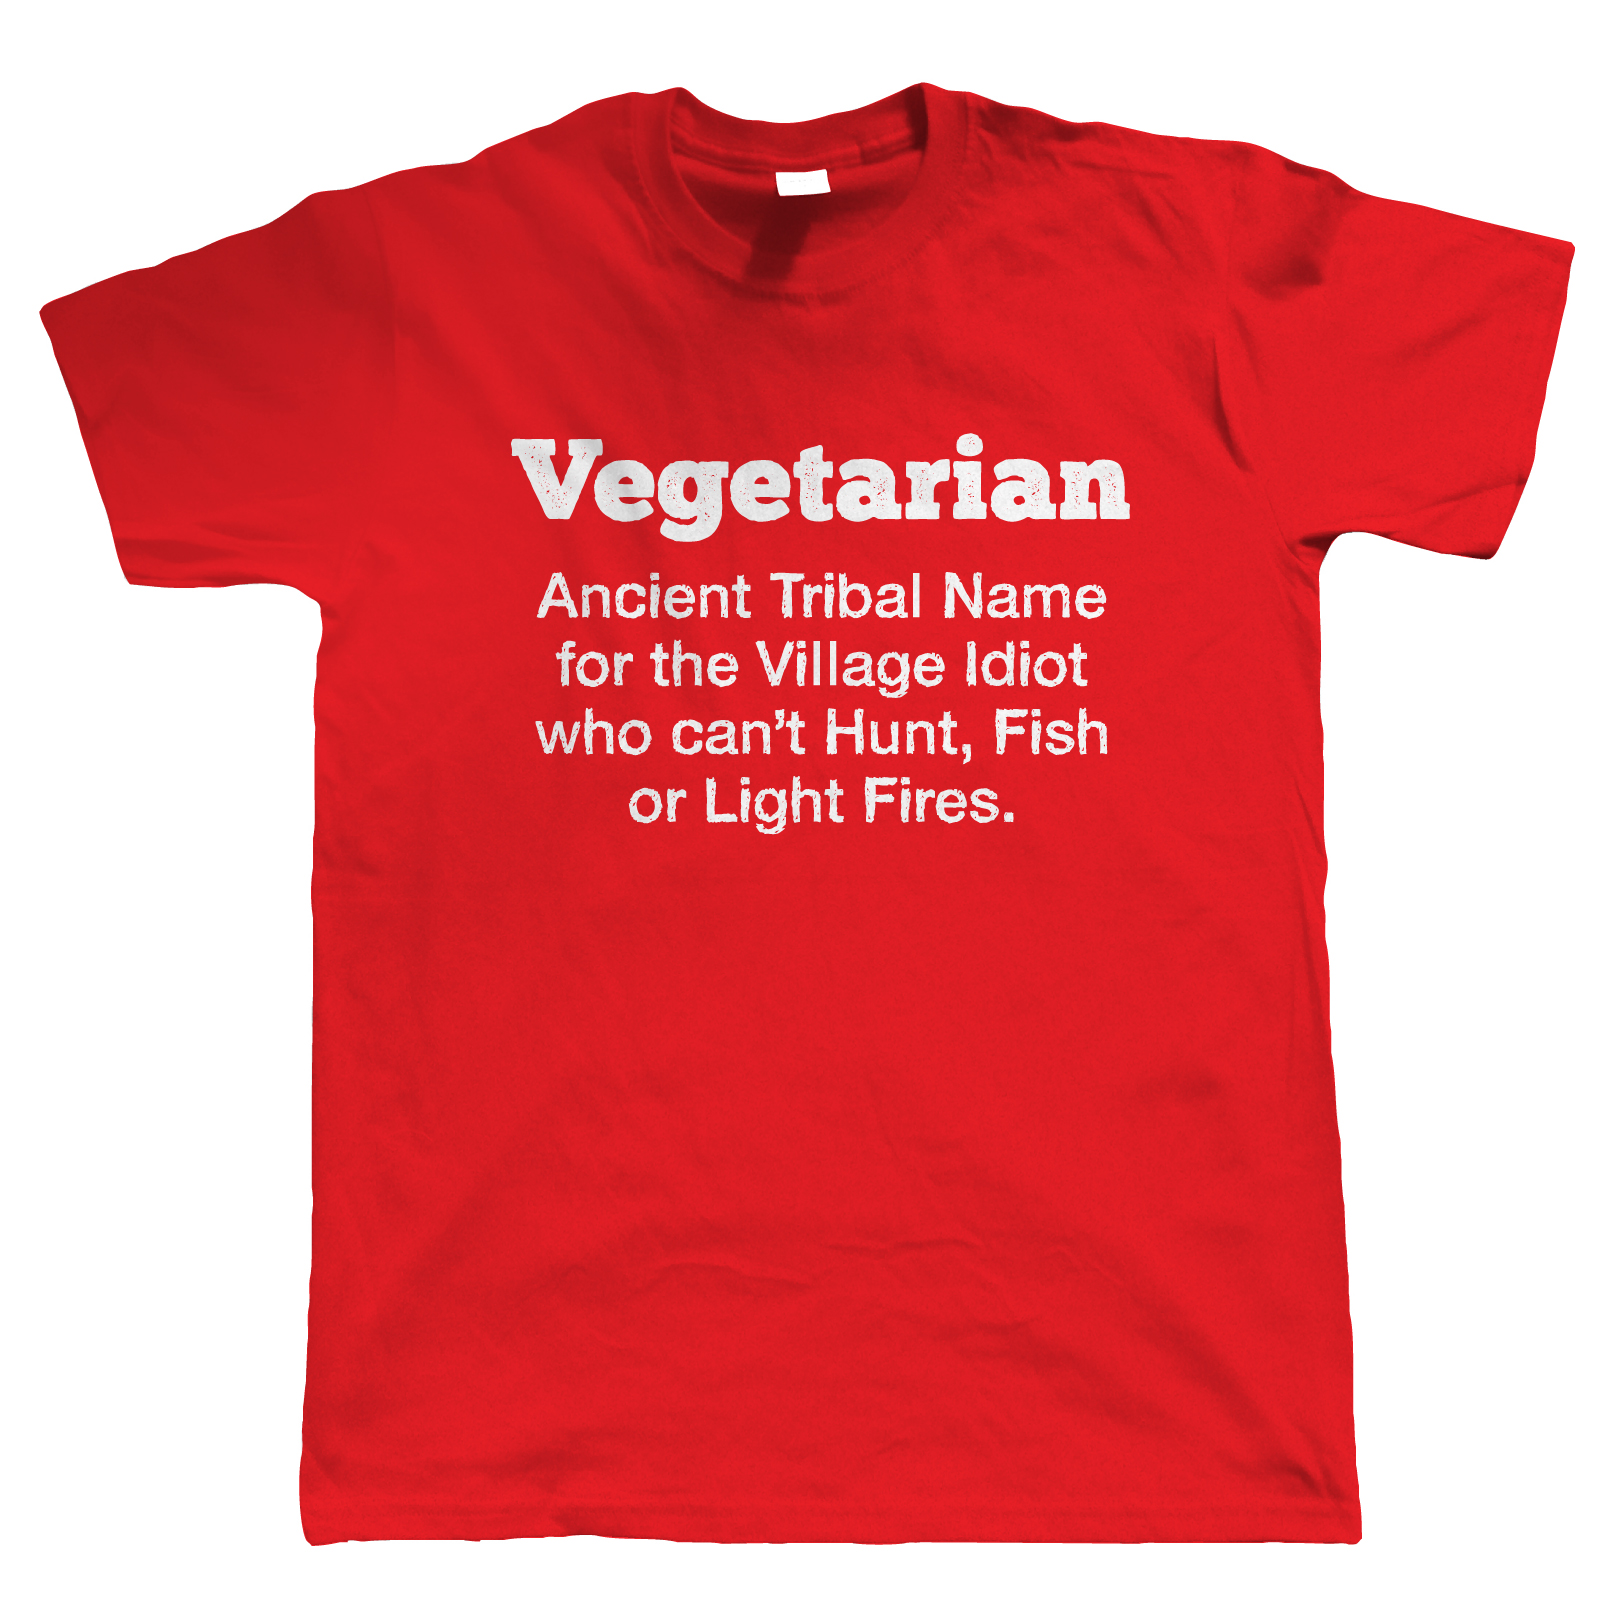 Vegetarian t-shirt funny man, novelty christmas gift for dad he